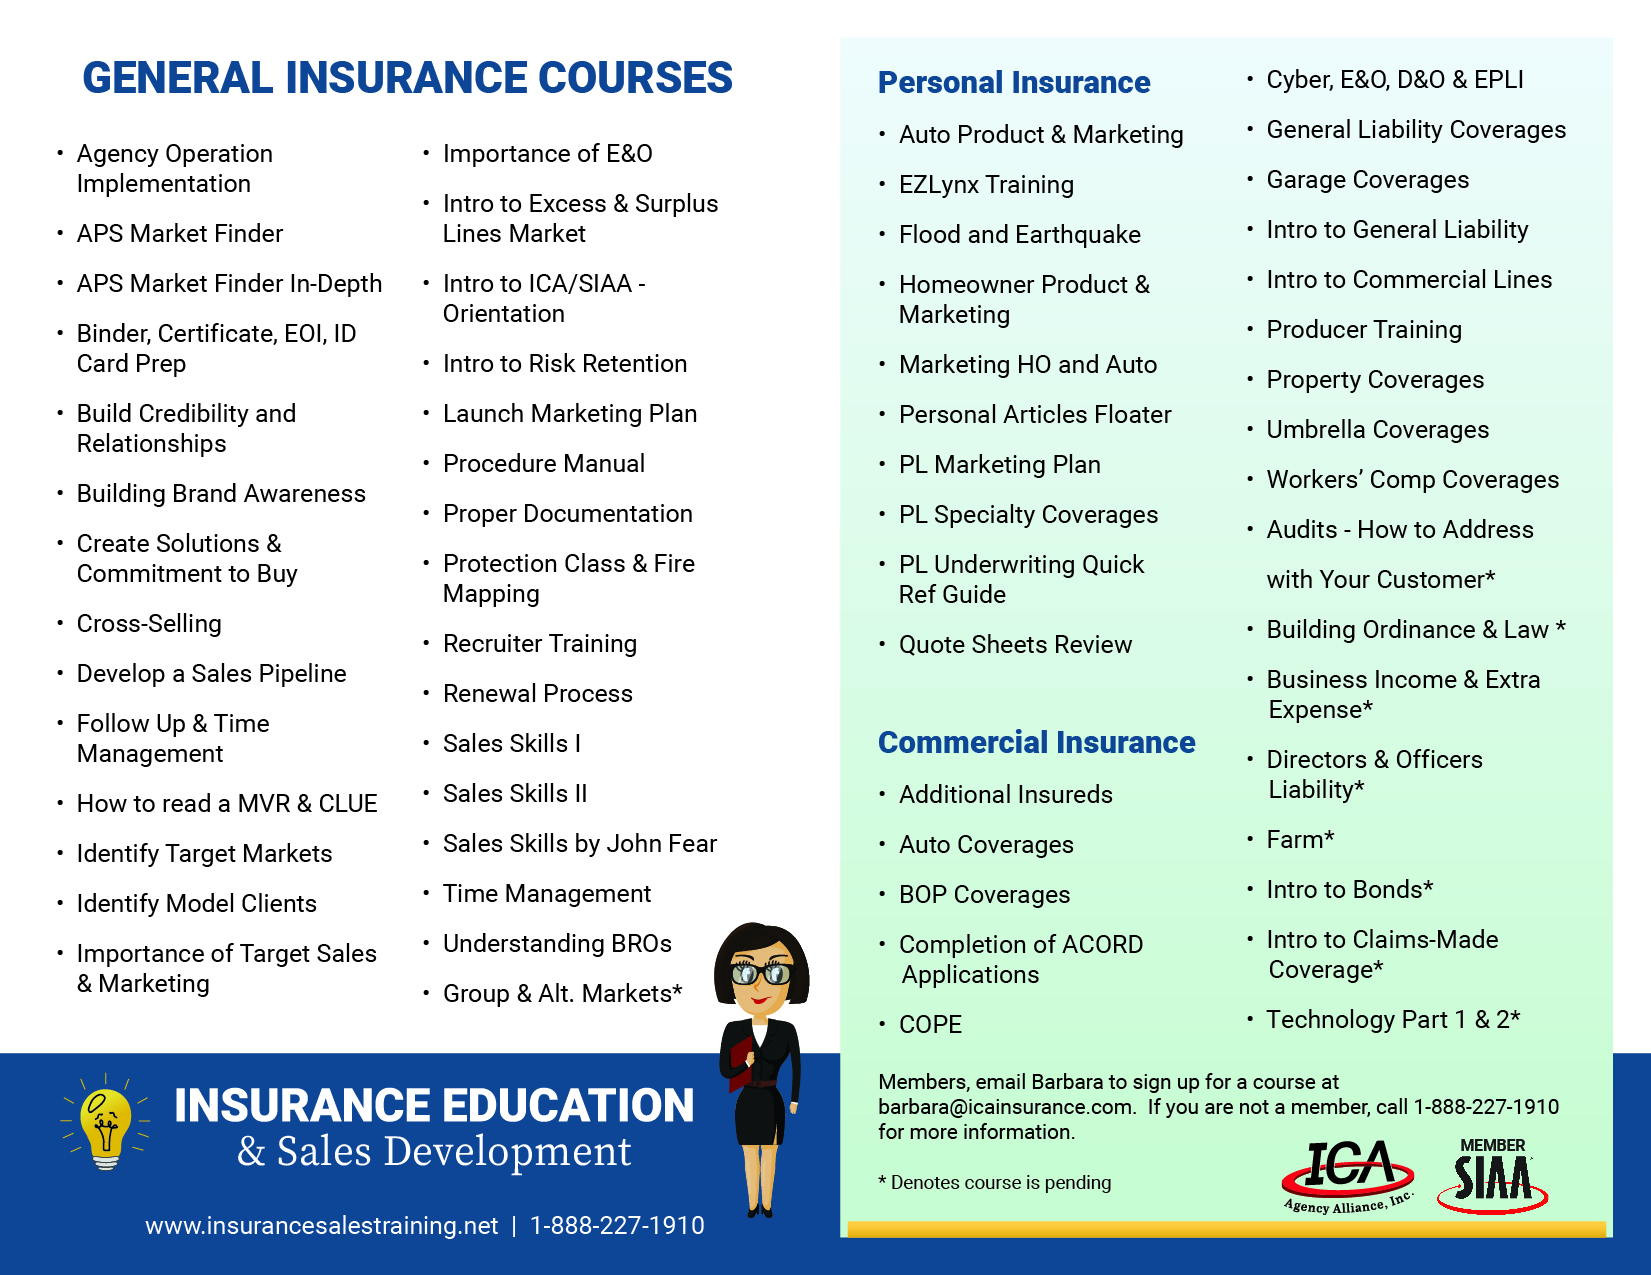 Insurance Education Courses